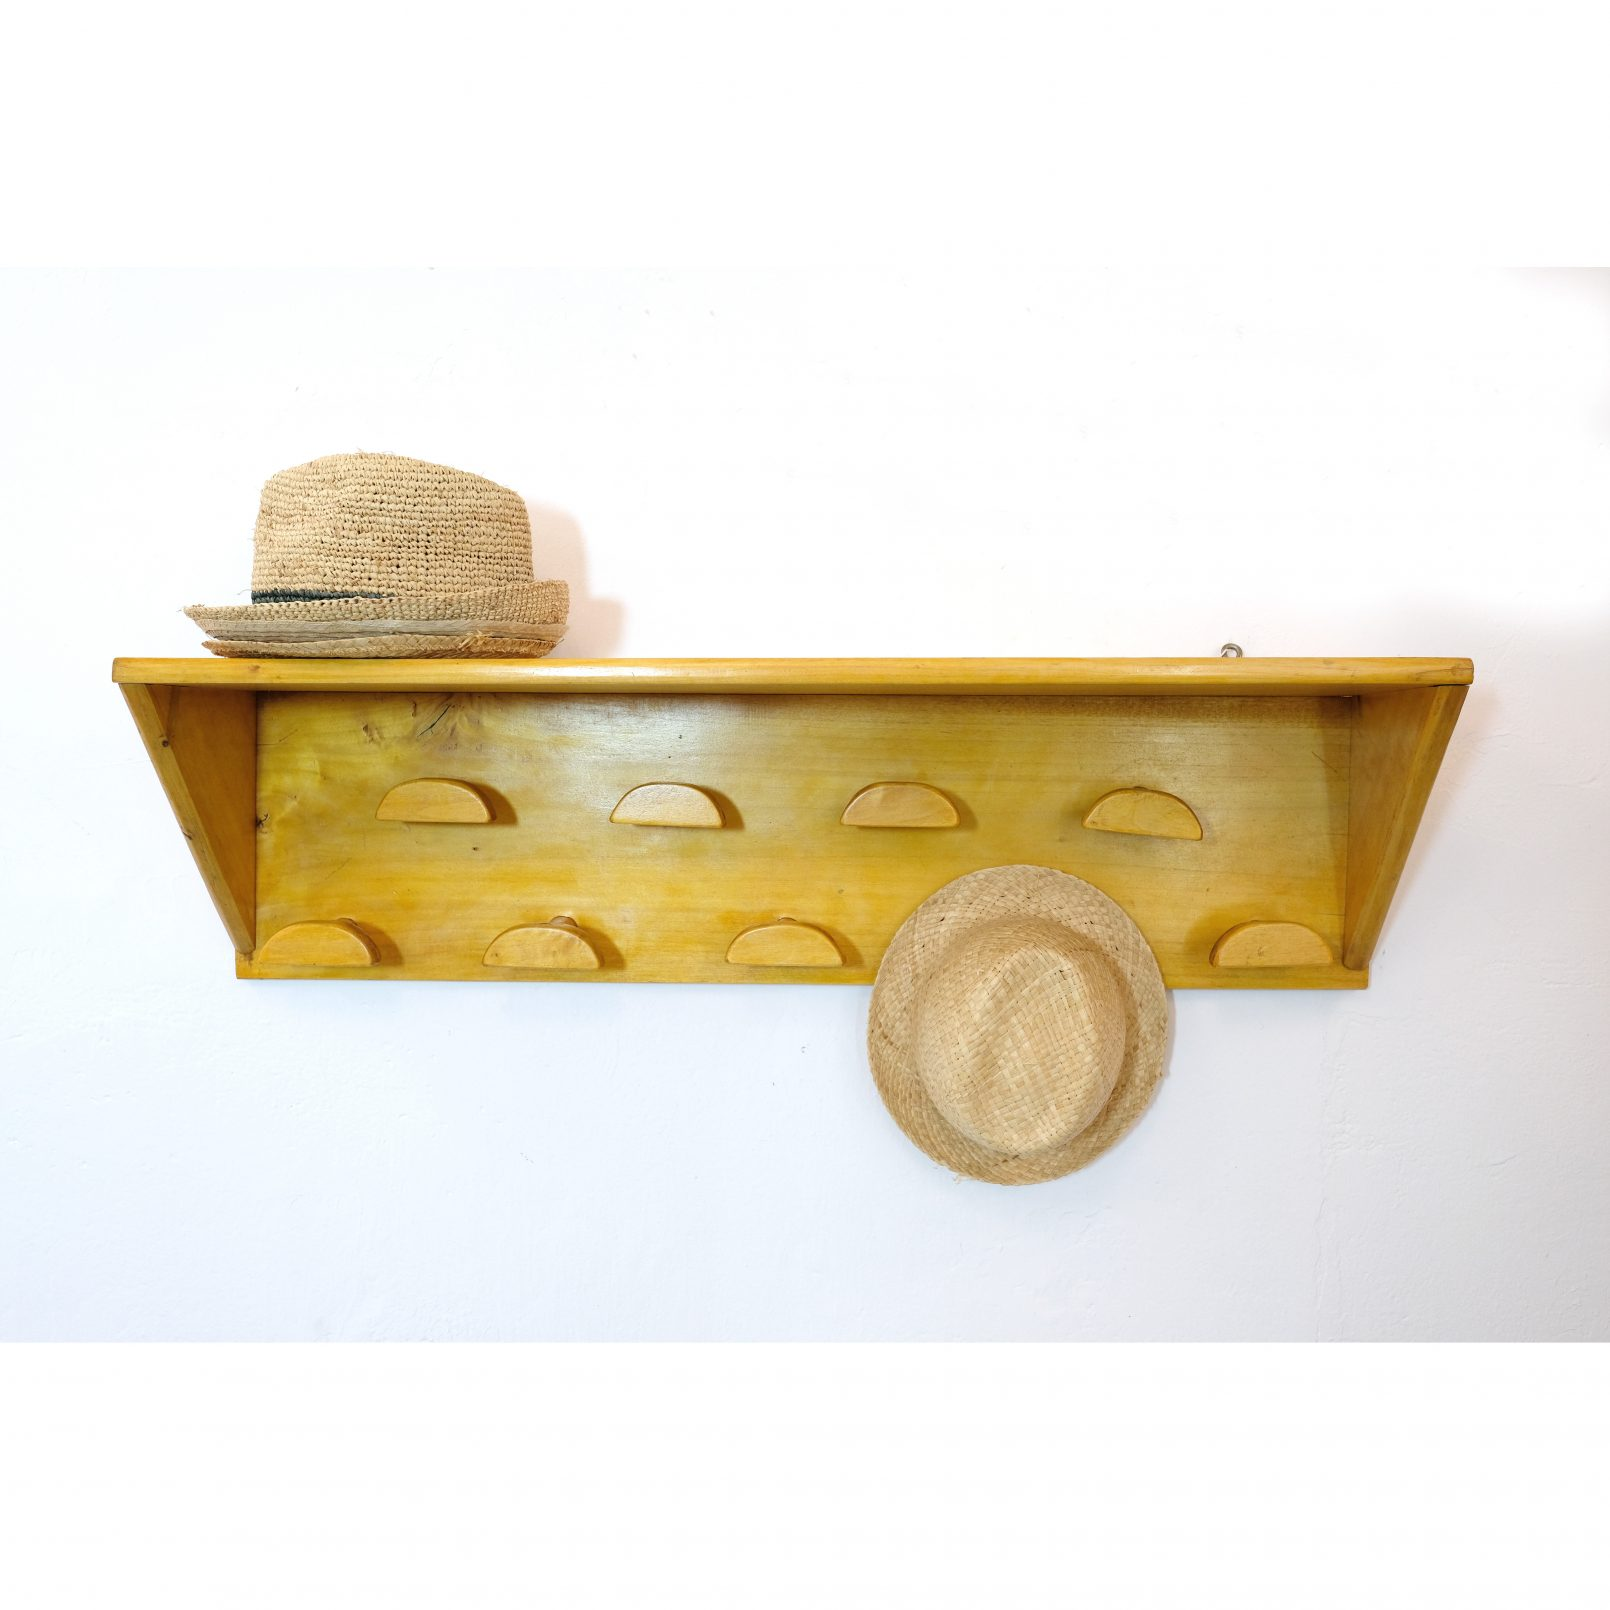 Large coat rack with a shelf, 9 hangers.